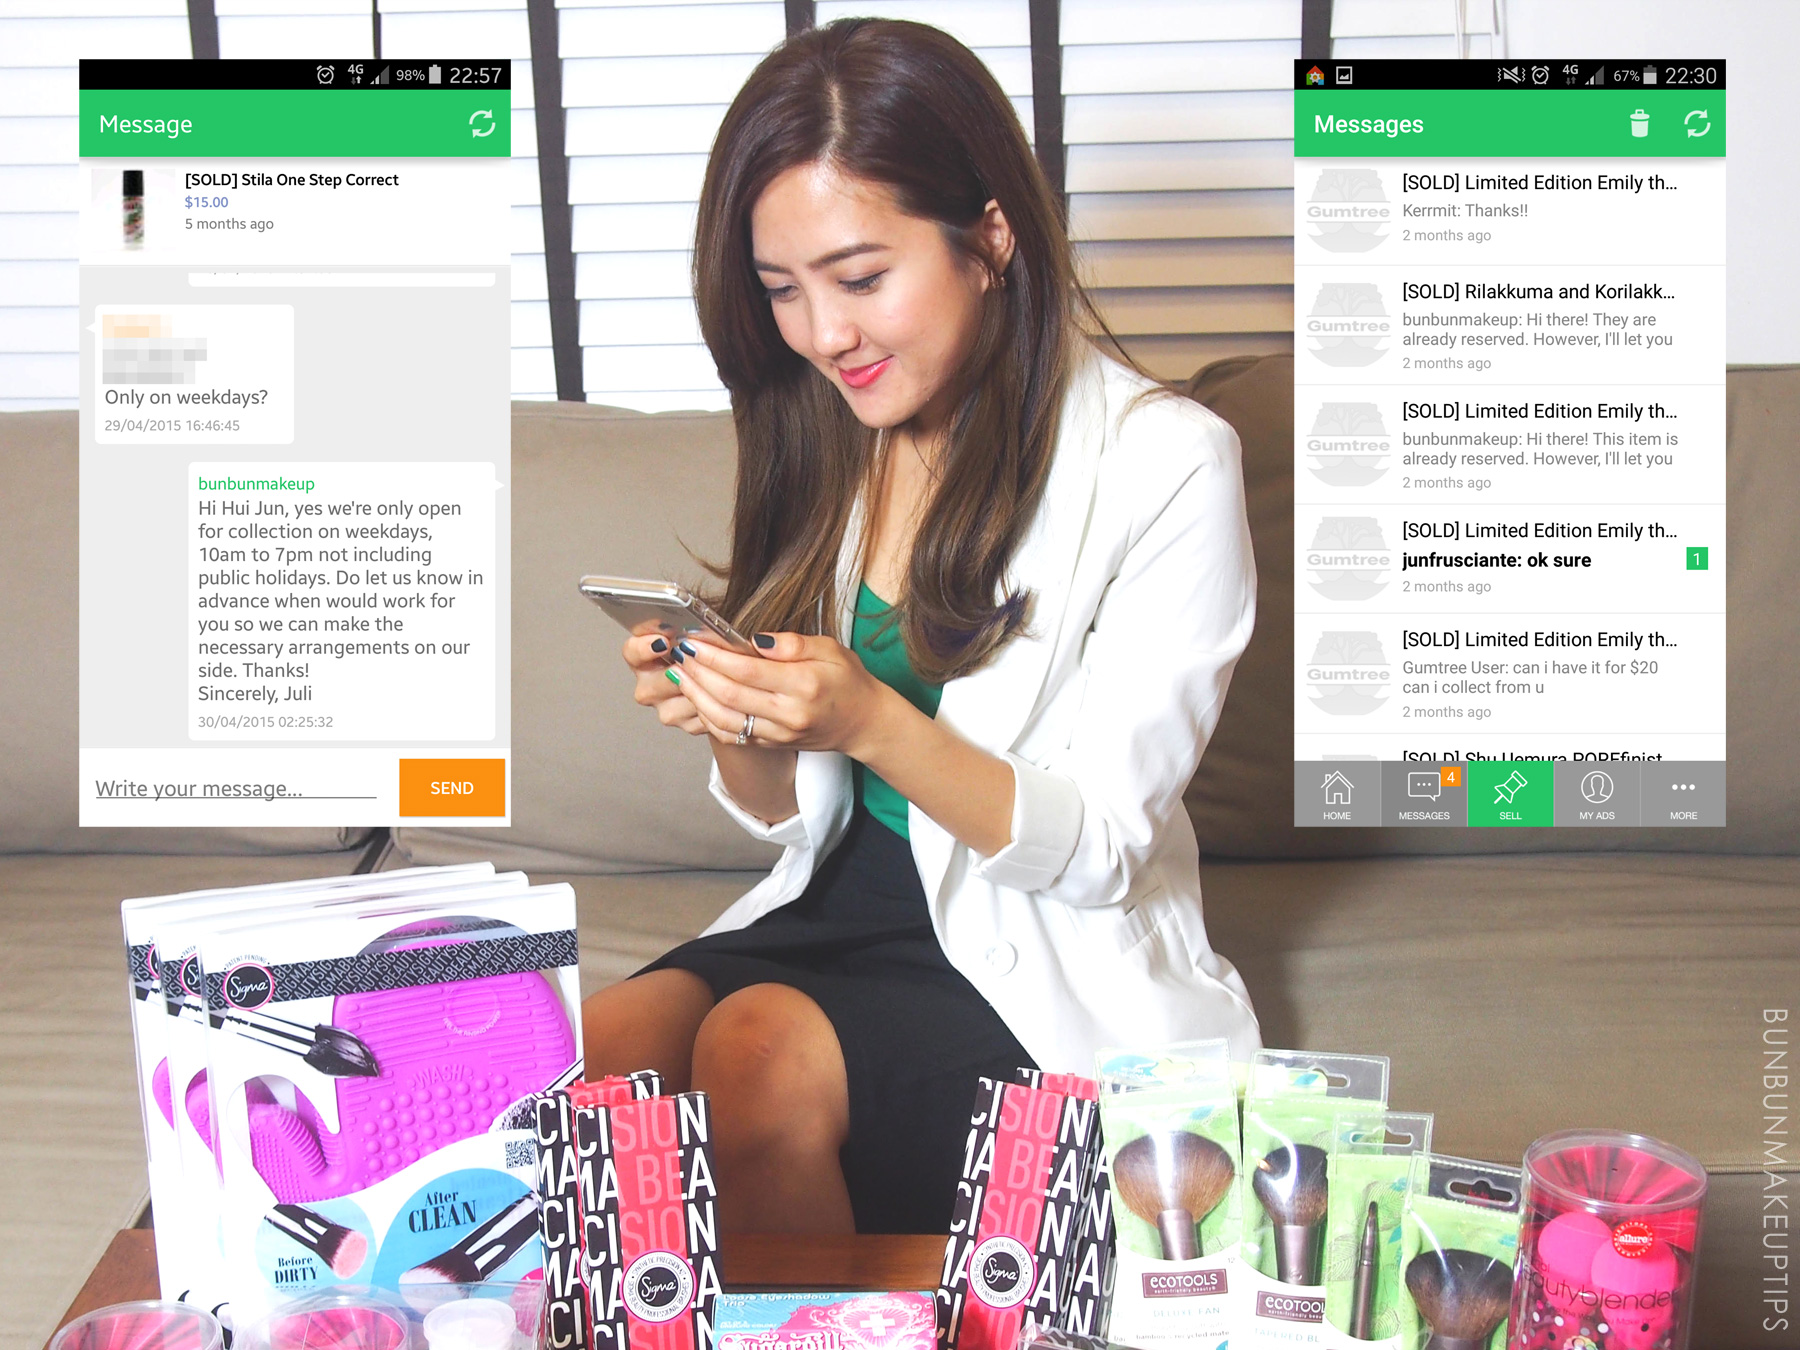 Gumtree-Doll-To-Doll-Cosmetics-Collaboration_7_Chat-messages